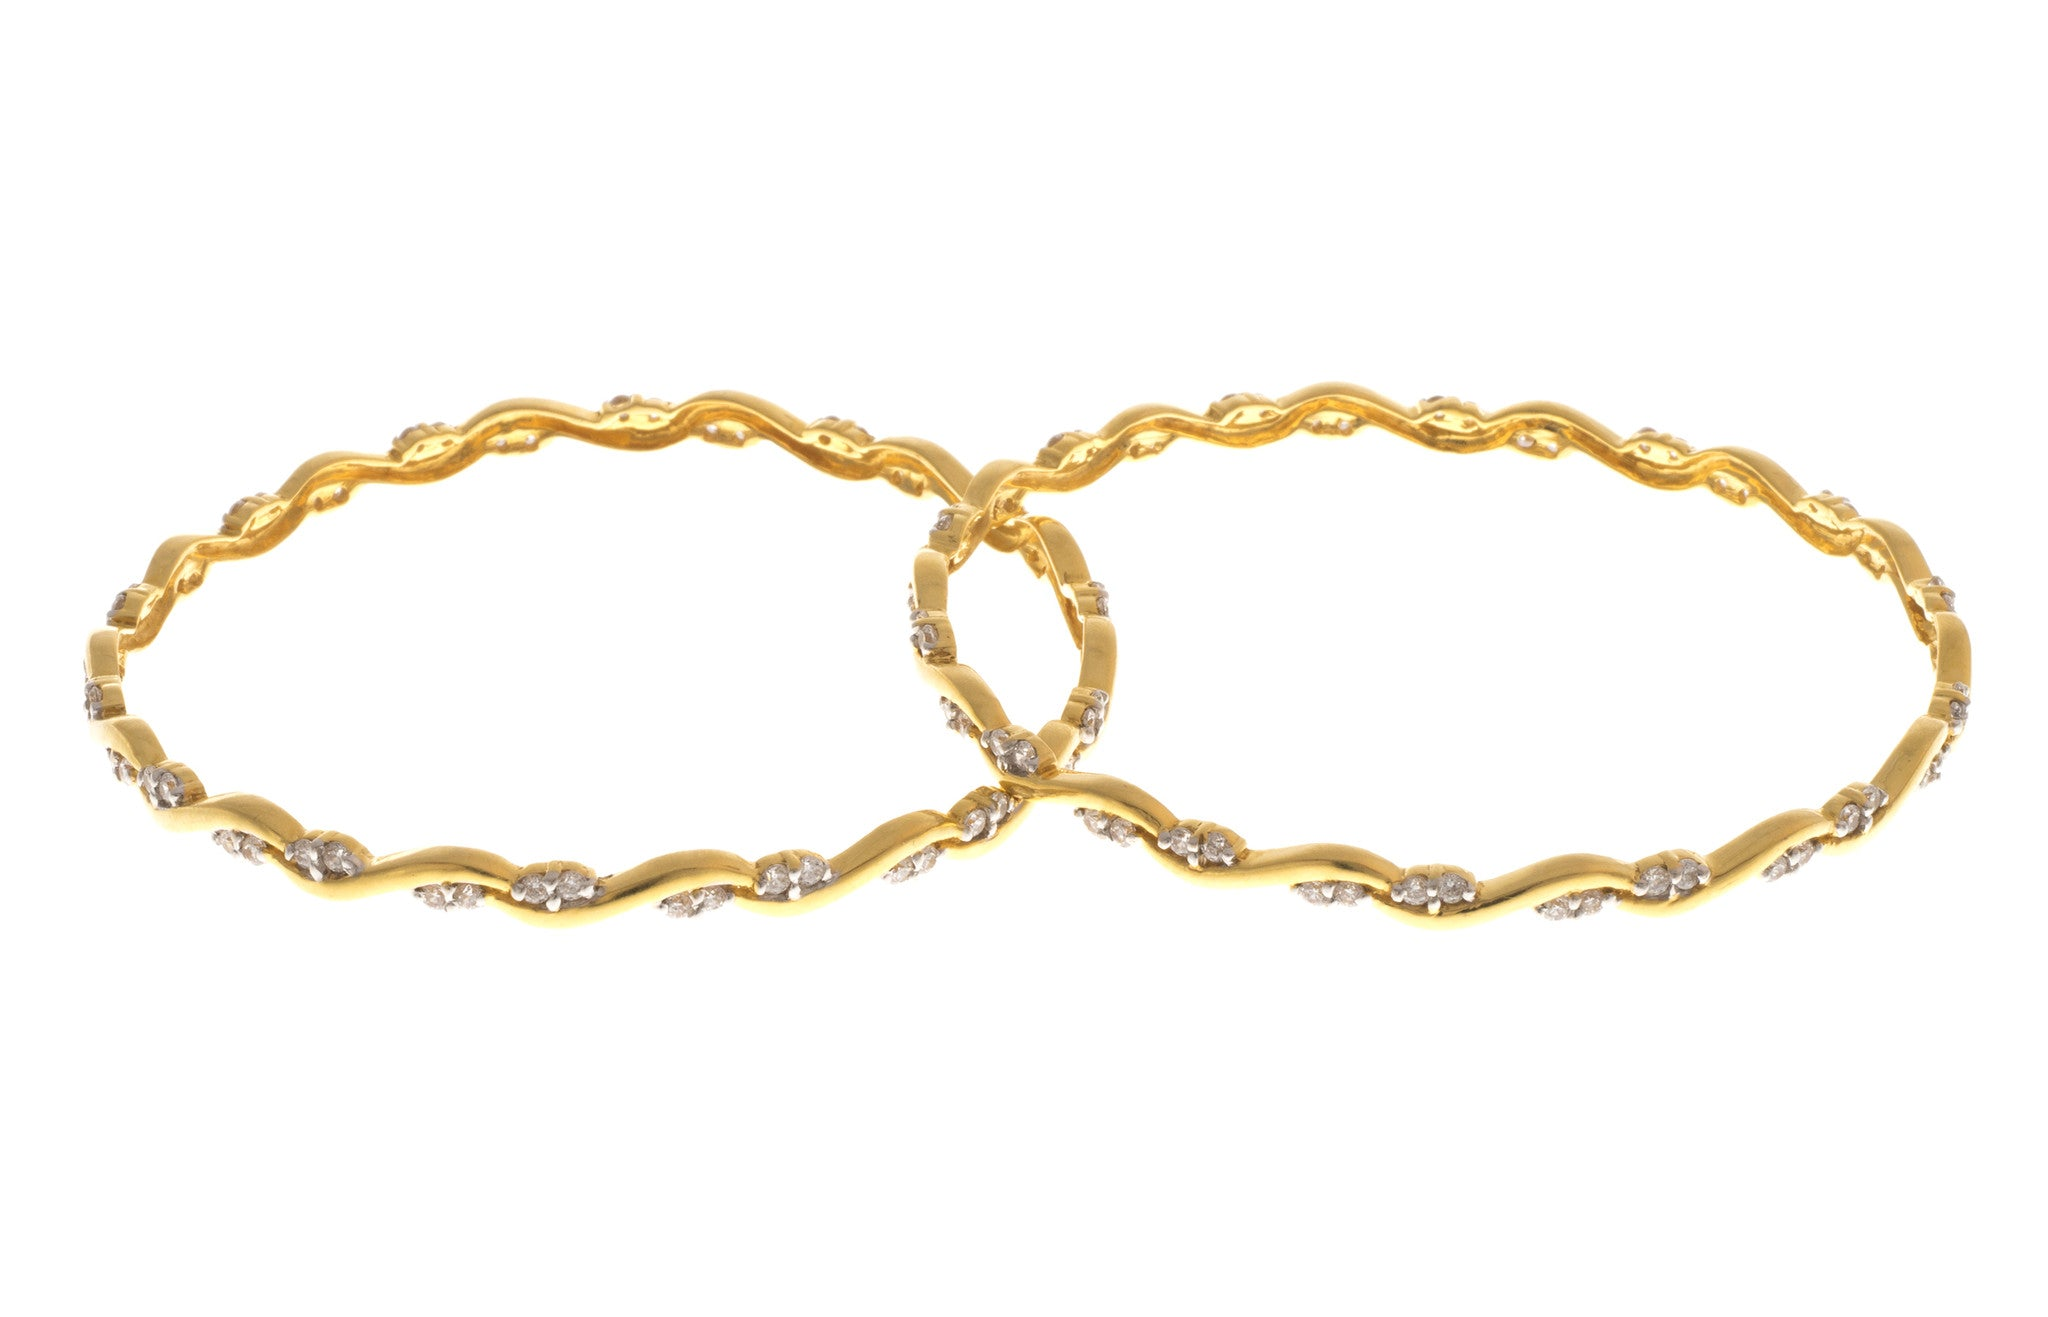 Two Stone Set 22ct Yellow Gold Bangles, Minar Jewellers - 1